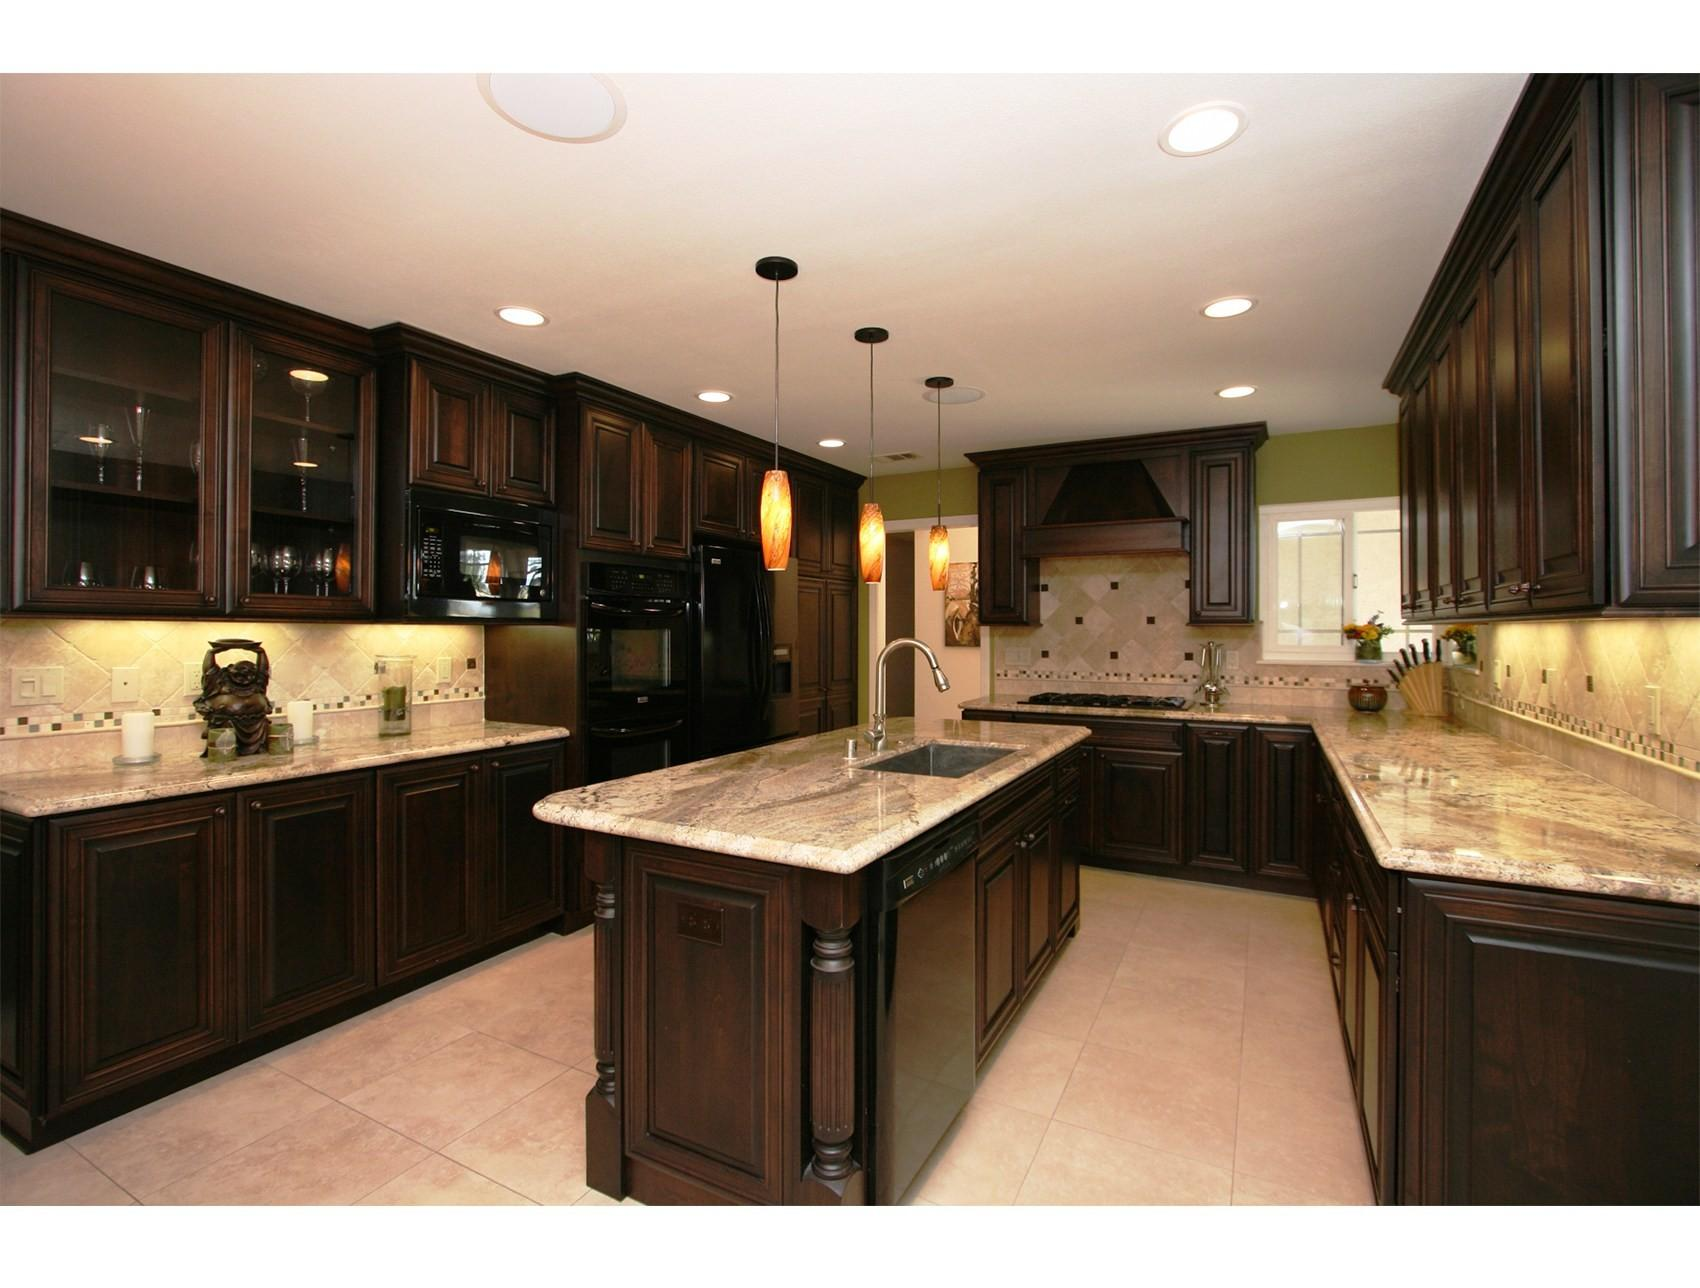 Amazing Affordable Kitchen Decorating Ideas